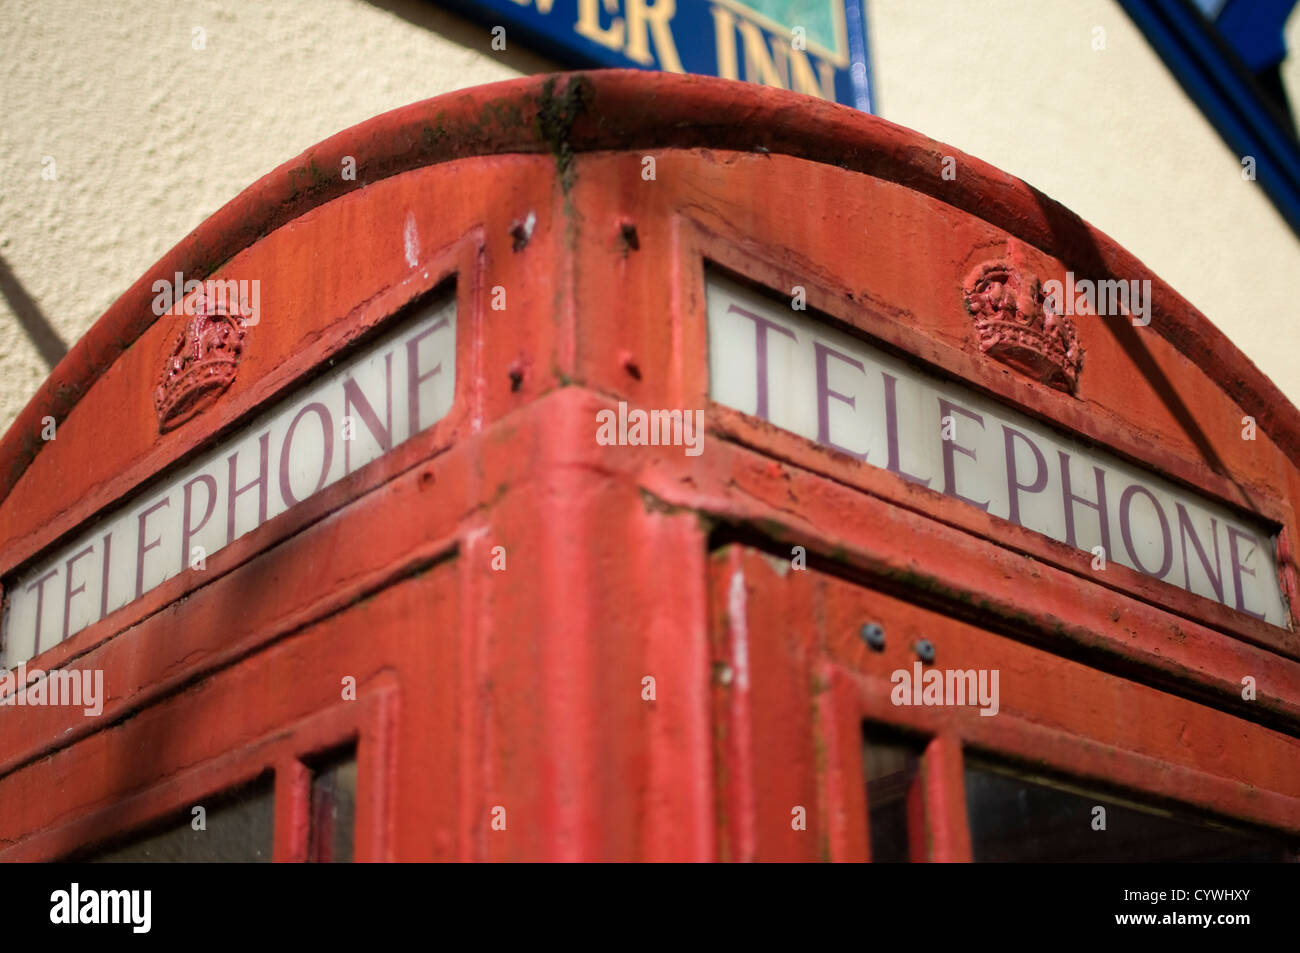 Traditional London red telephone box with signs of wear Stock Photo